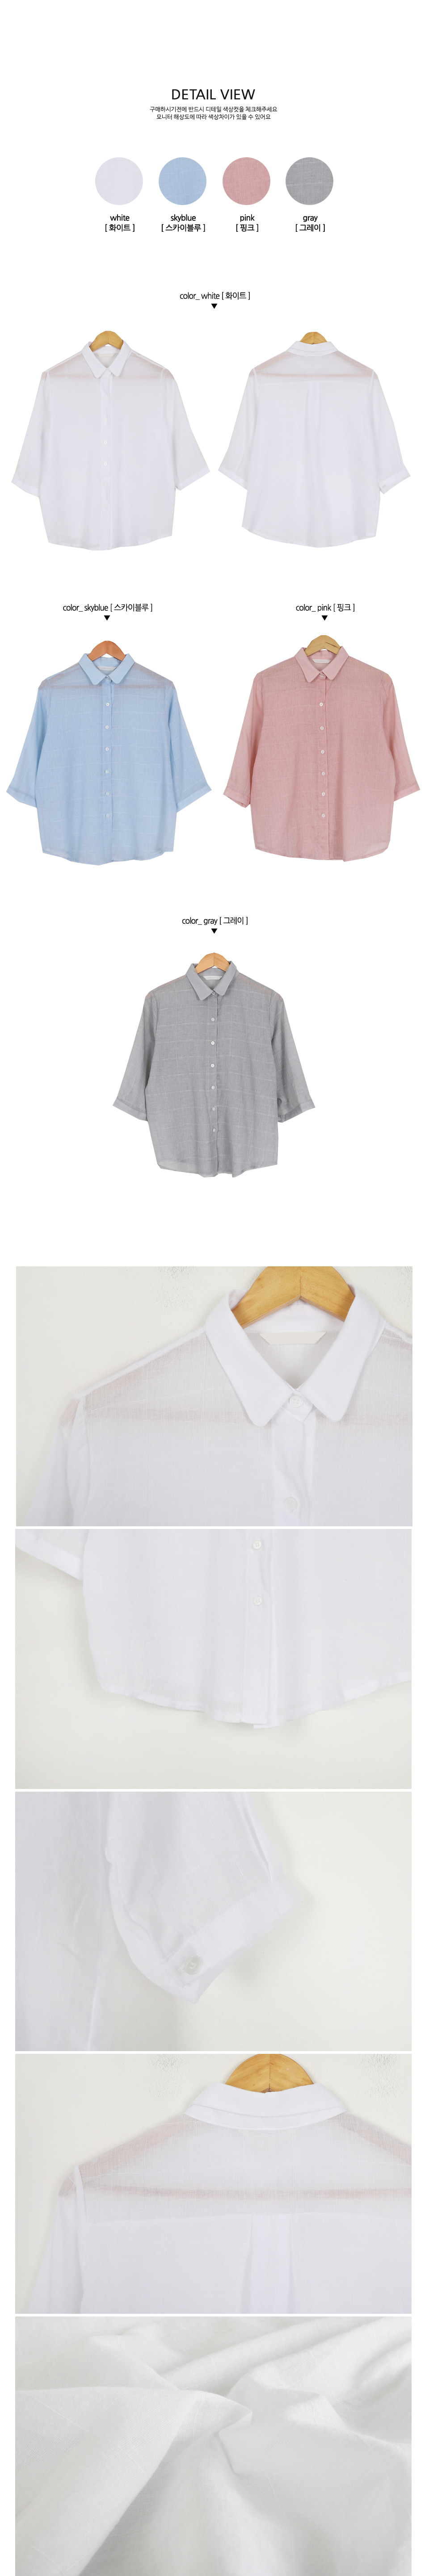 Larm check obuvu shirt